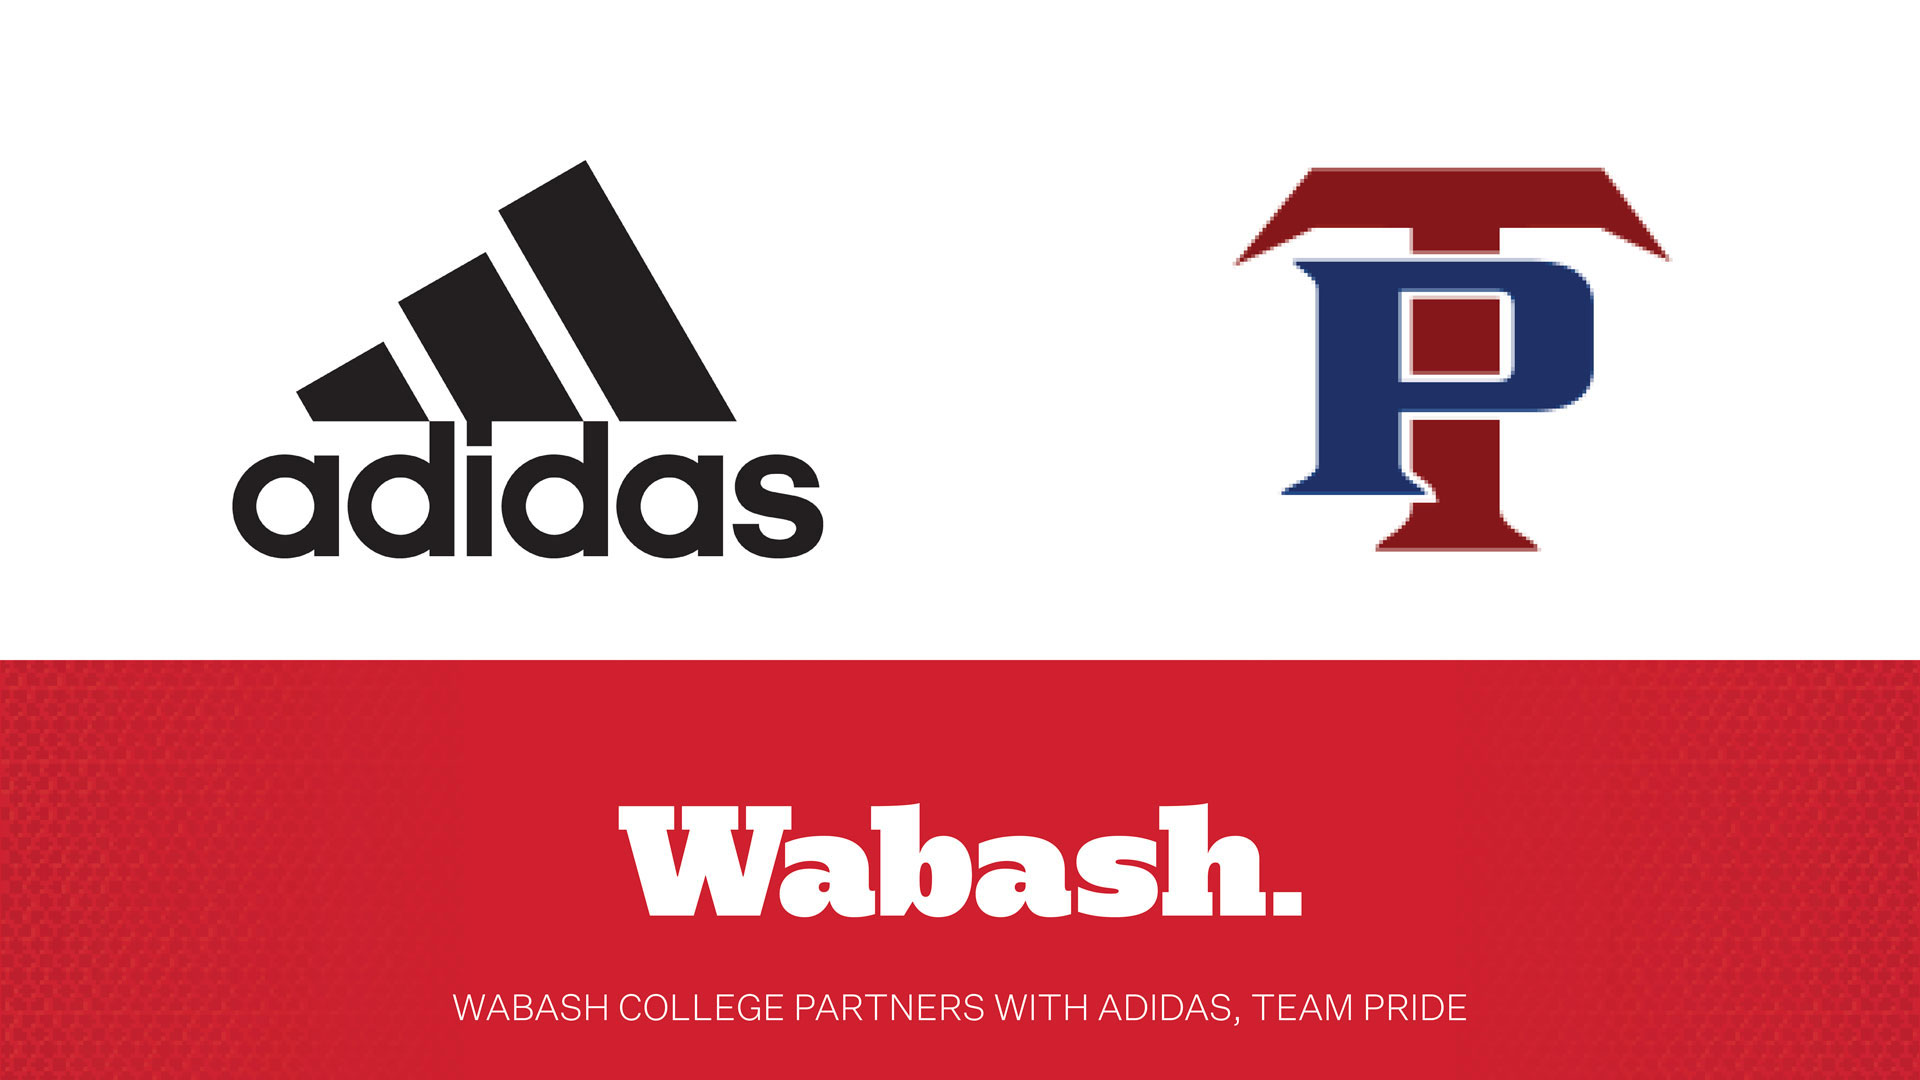 d71abb1e3 Wabash College Partners with Adidas